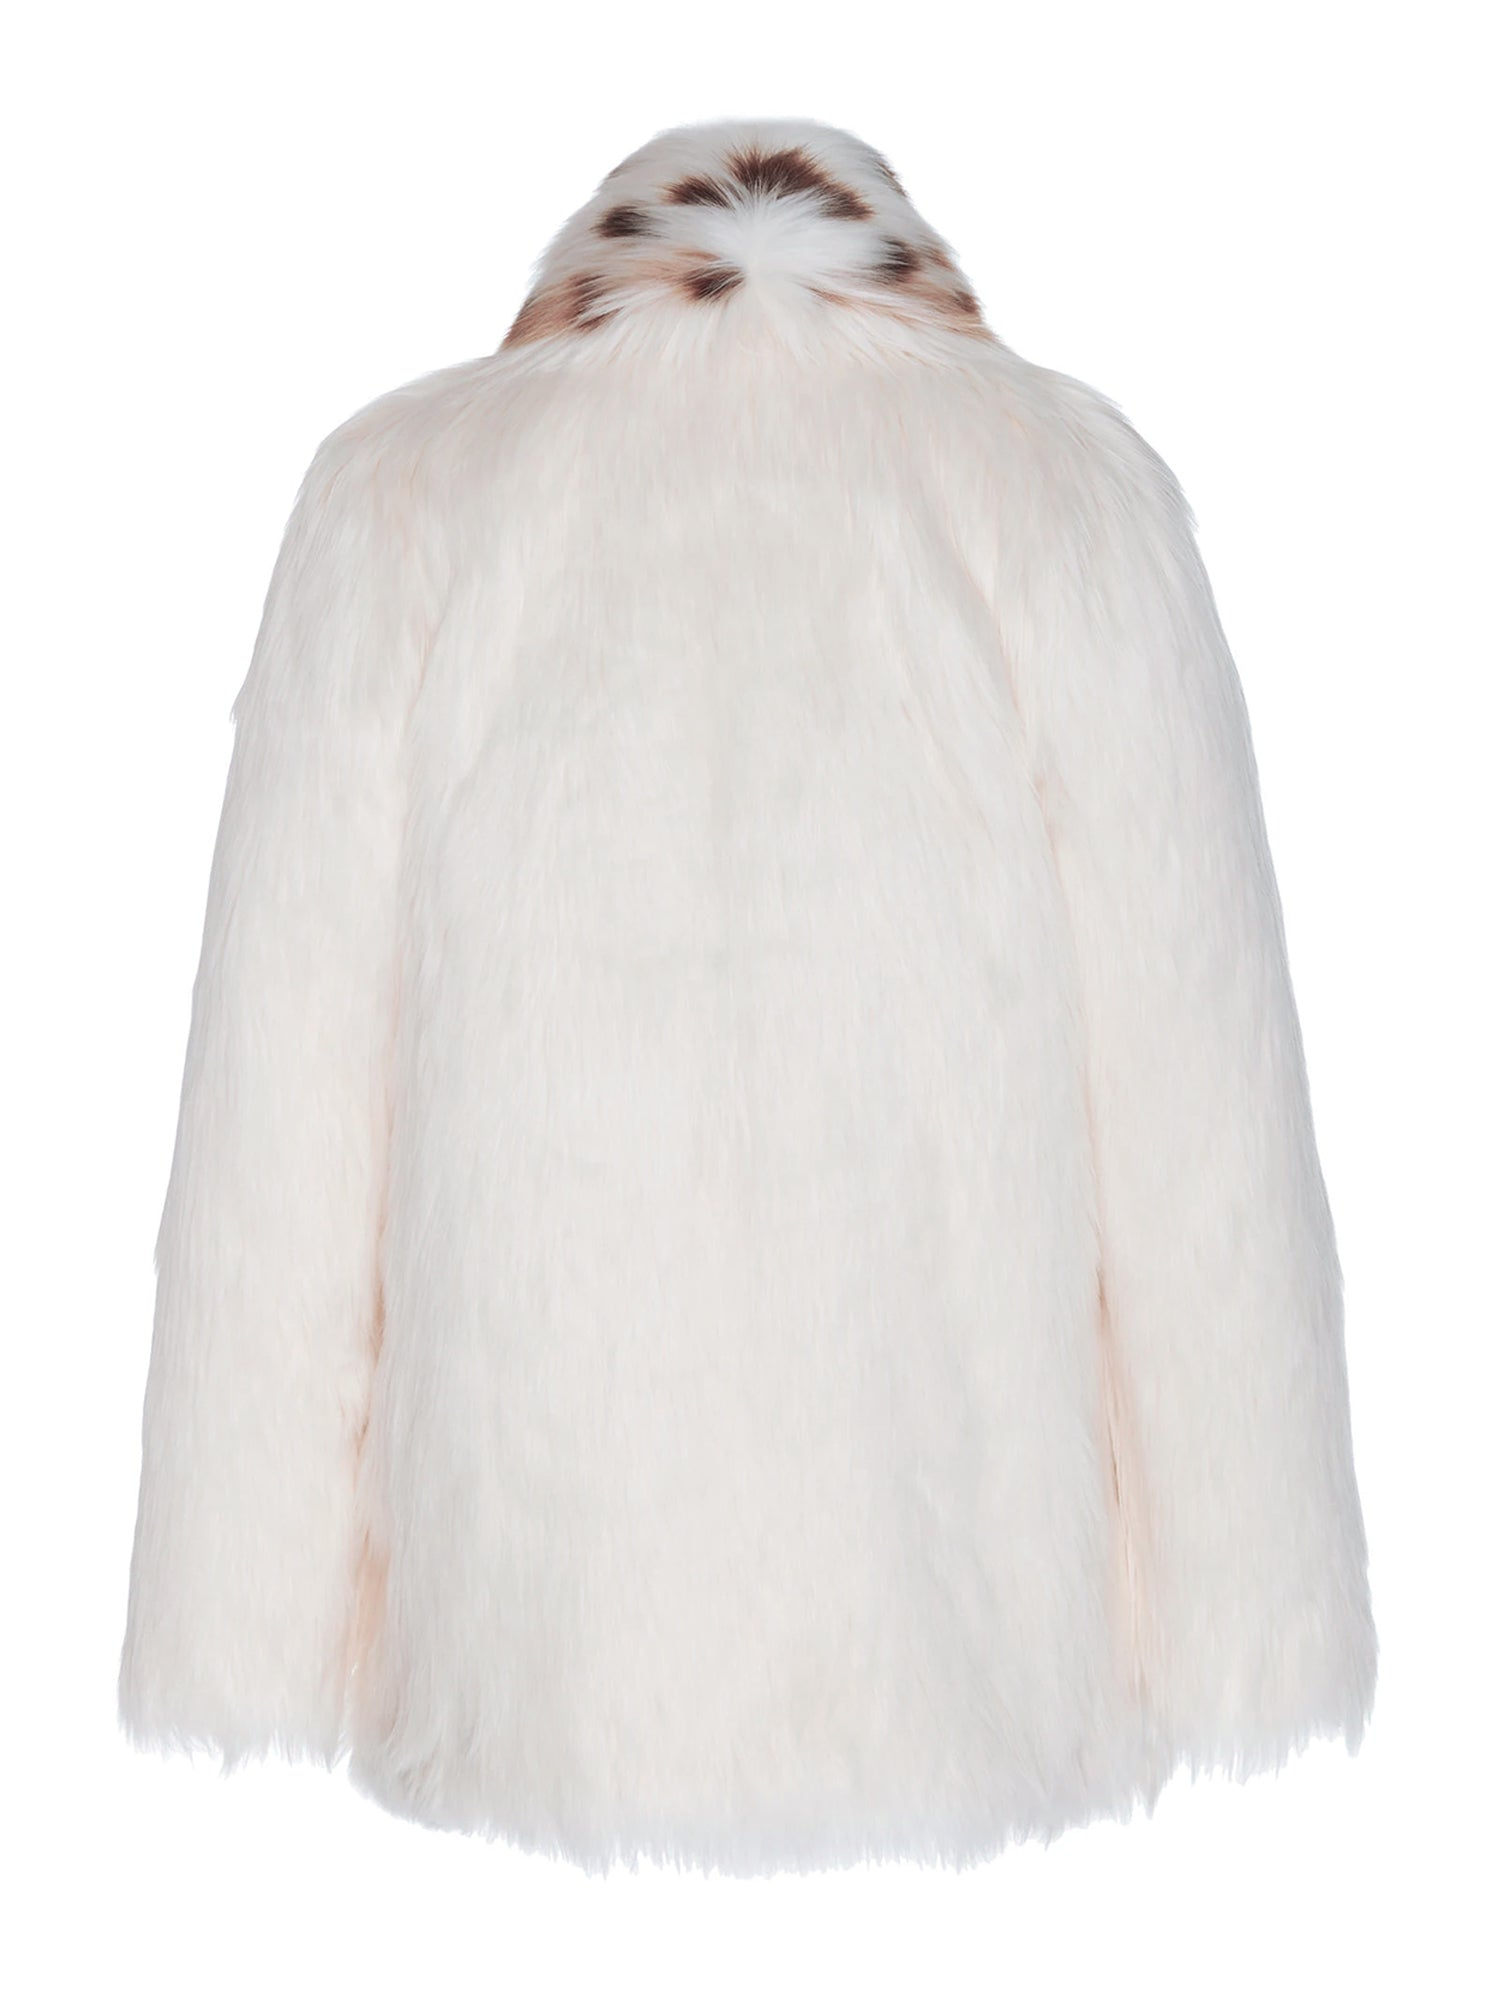 A Packshot Of Marei1998's Tiger Lily Faux Fur Coat In White Color. Featuring Oversized Silhouette And Shawl Collar. Spotted Collar Design Contrasts The Elegant White Hue, Creating A Chic Look. Back View. Resort 2020 Collection - Furless Friendship.